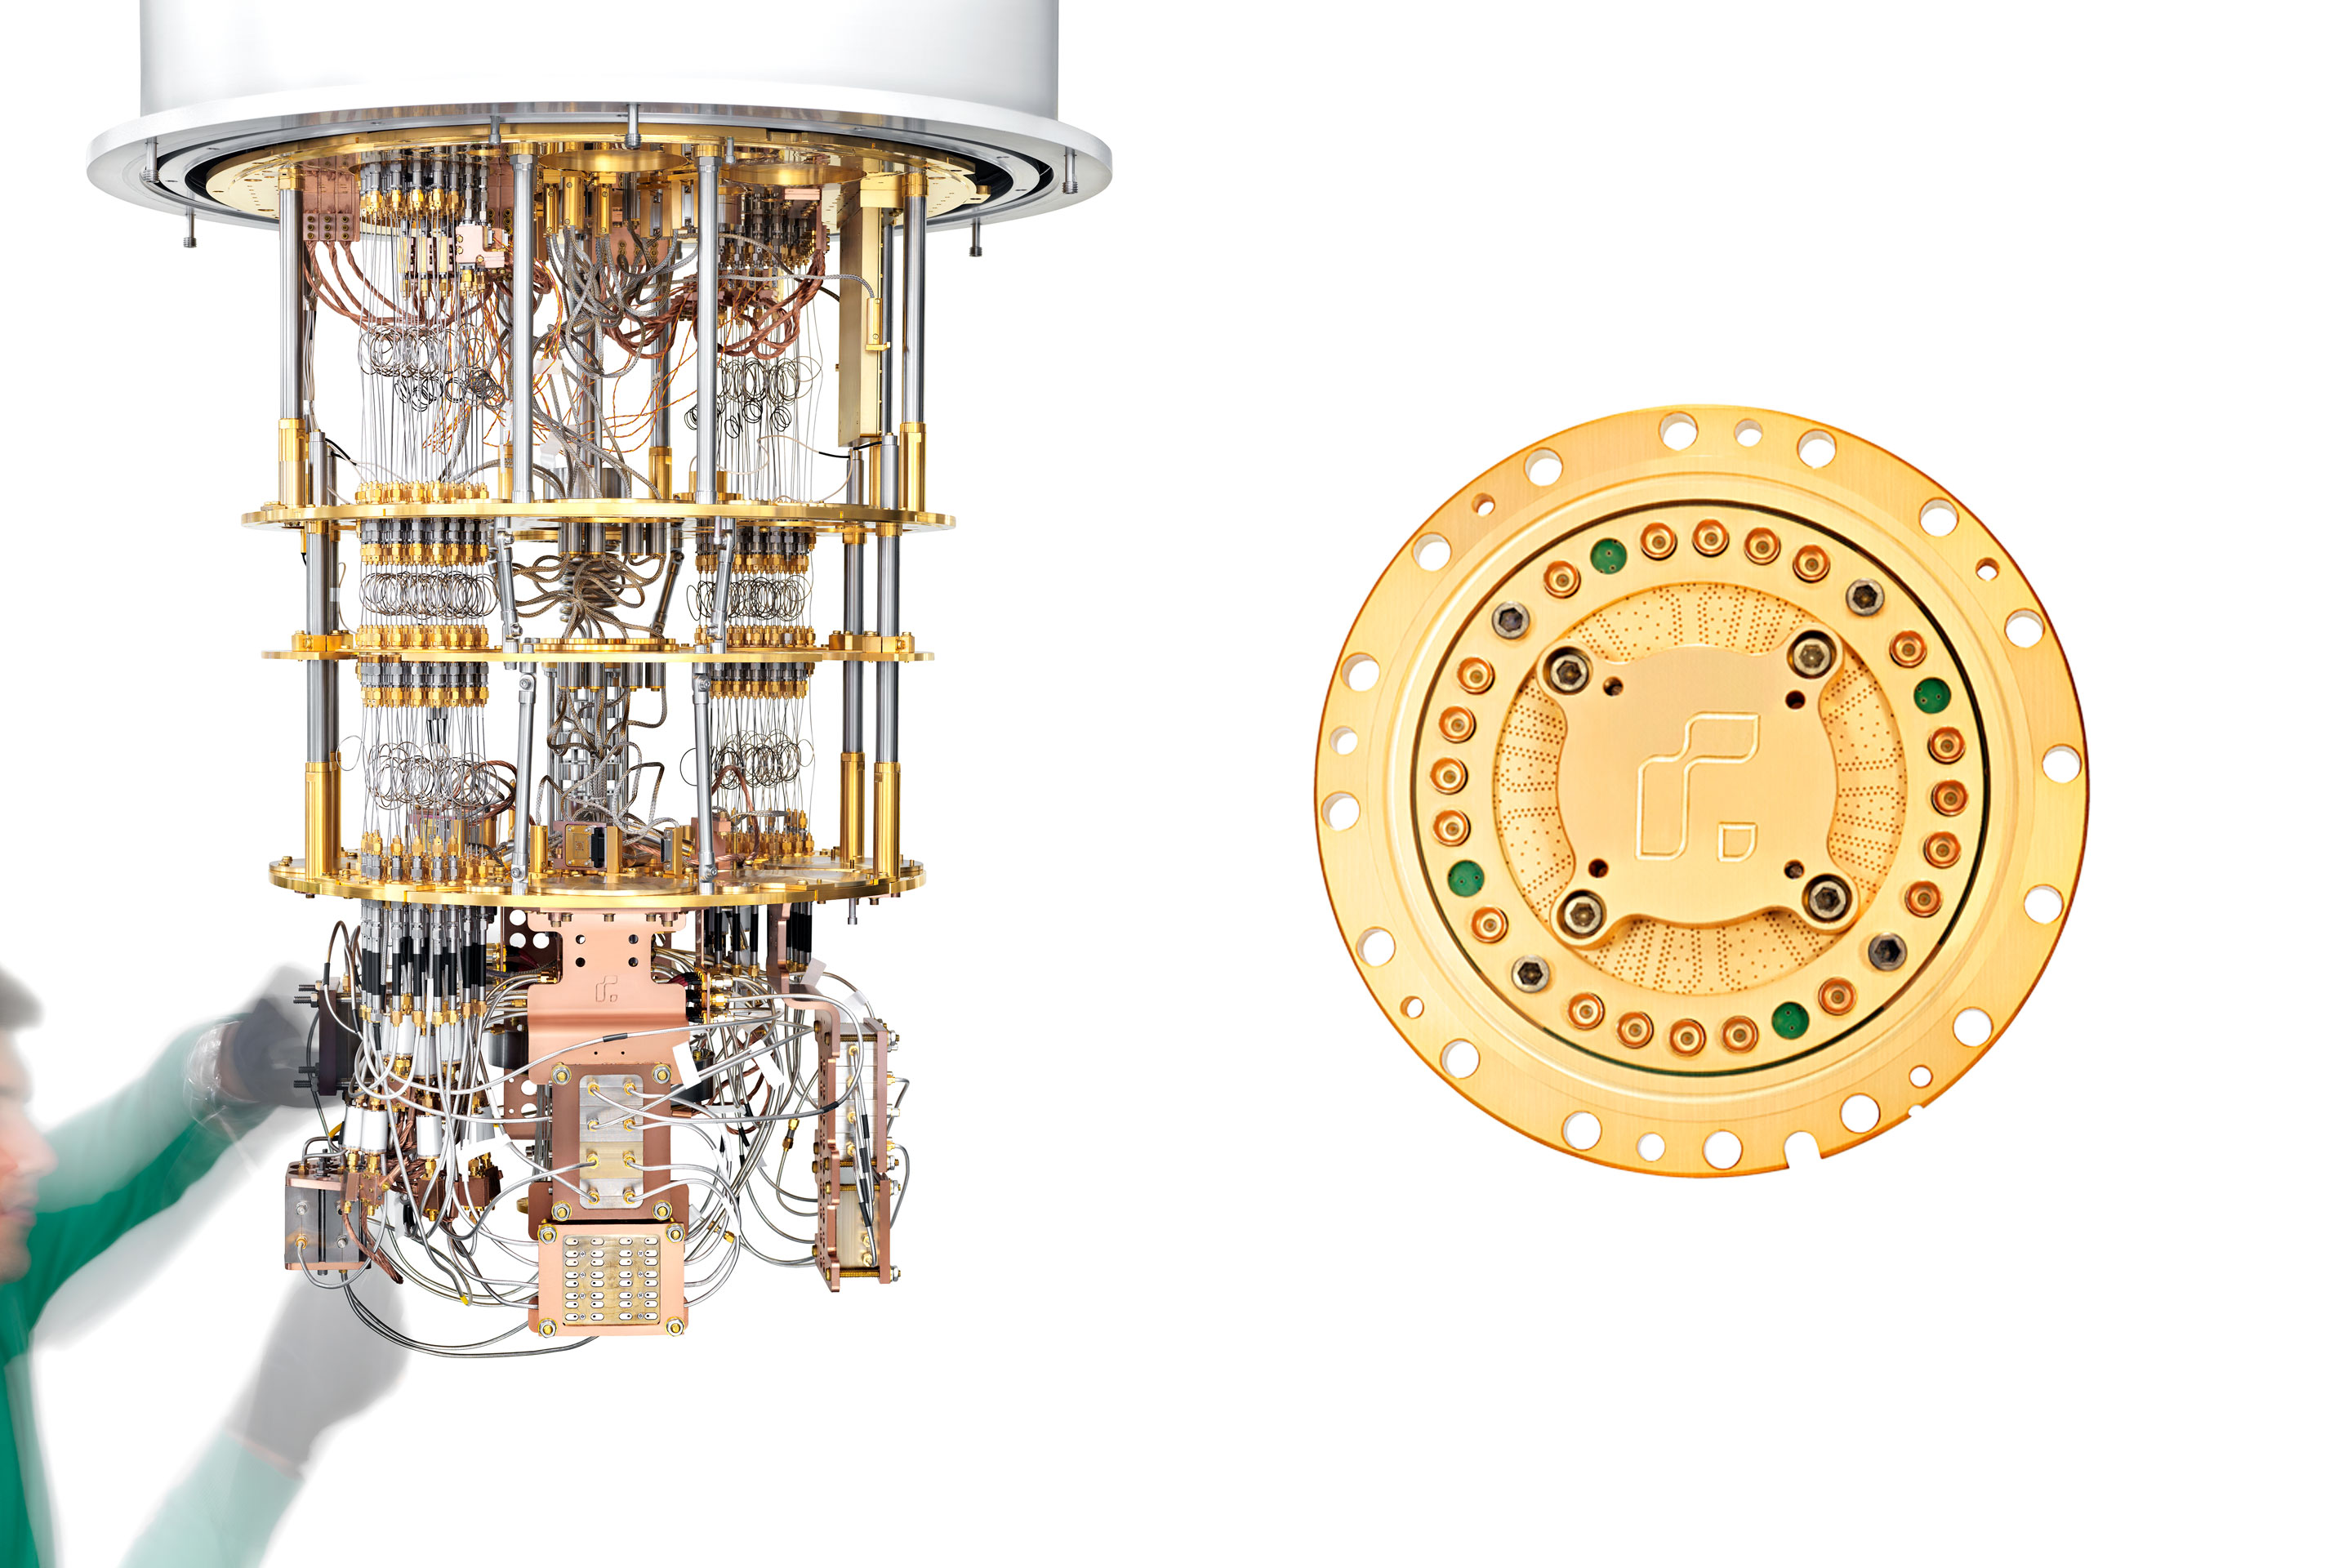 Quantum Computers: Here's What One Looks Like | Fortune